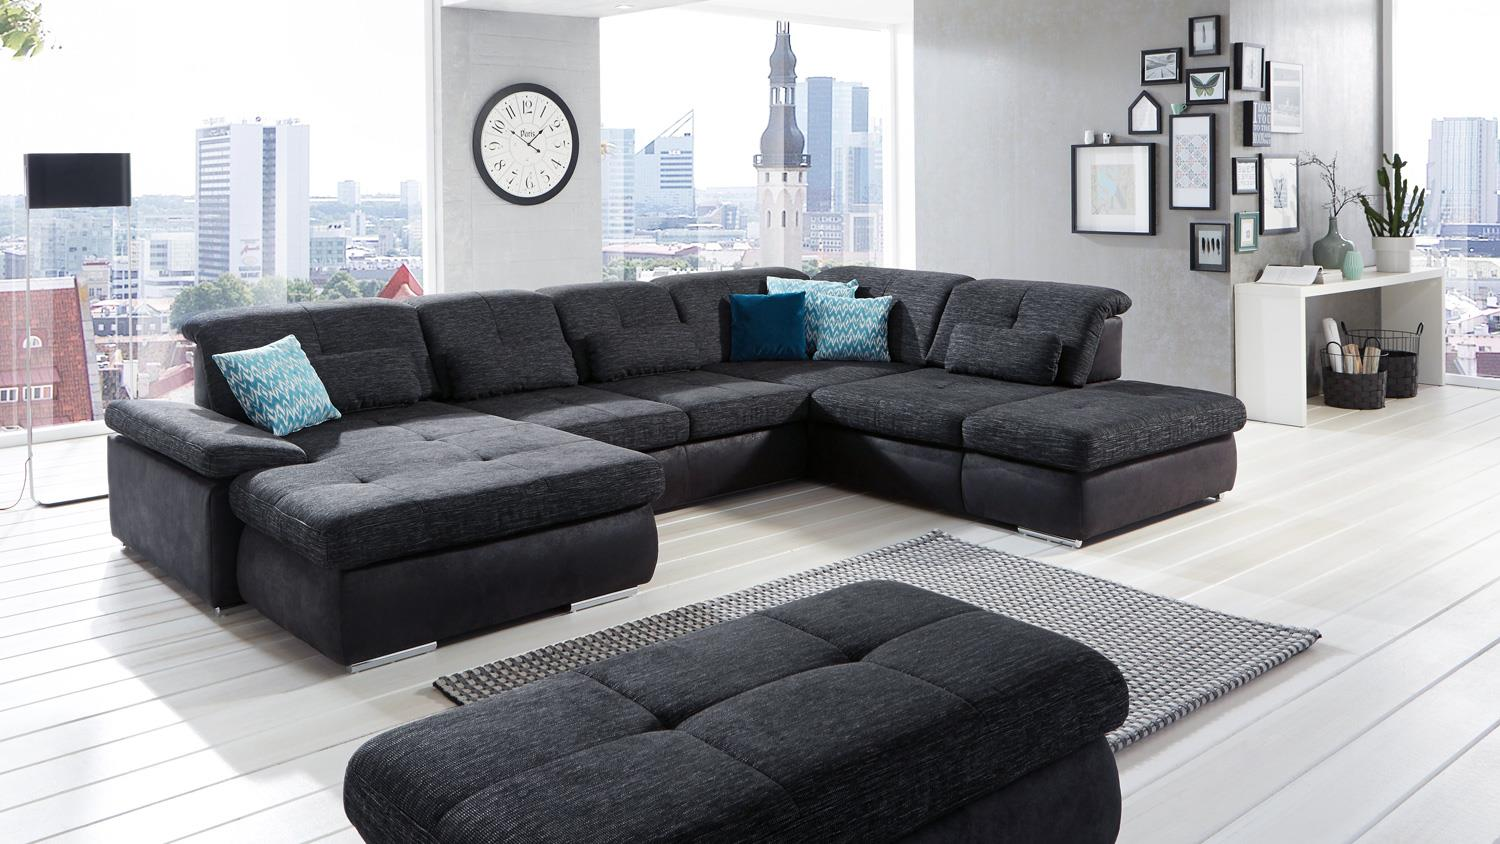 wohnlandschaft active ecksofa stoff schwarz mit. Black Bedroom Furniture Sets. Home Design Ideas